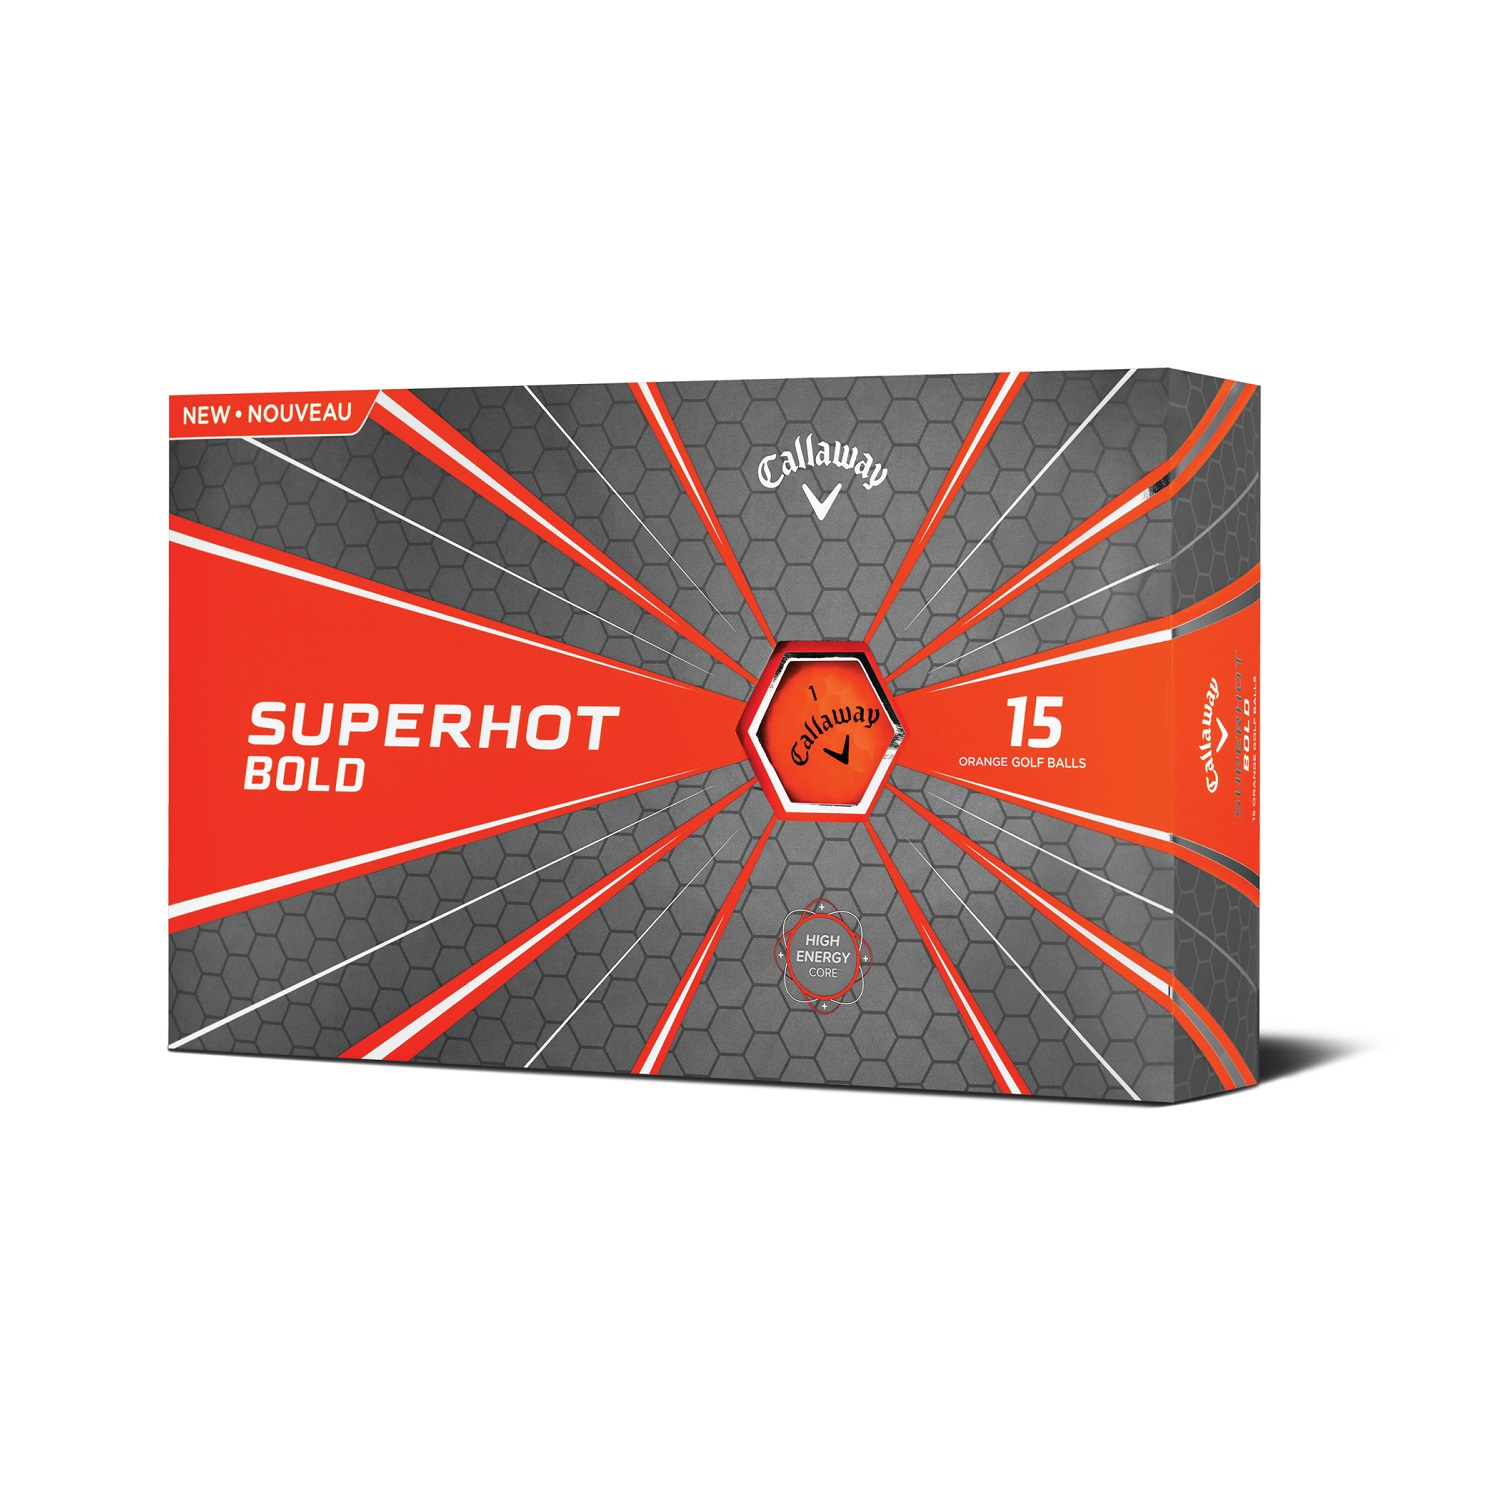 Callaway Superhot 18 Golf Balls - 15 Pack Bold Orange